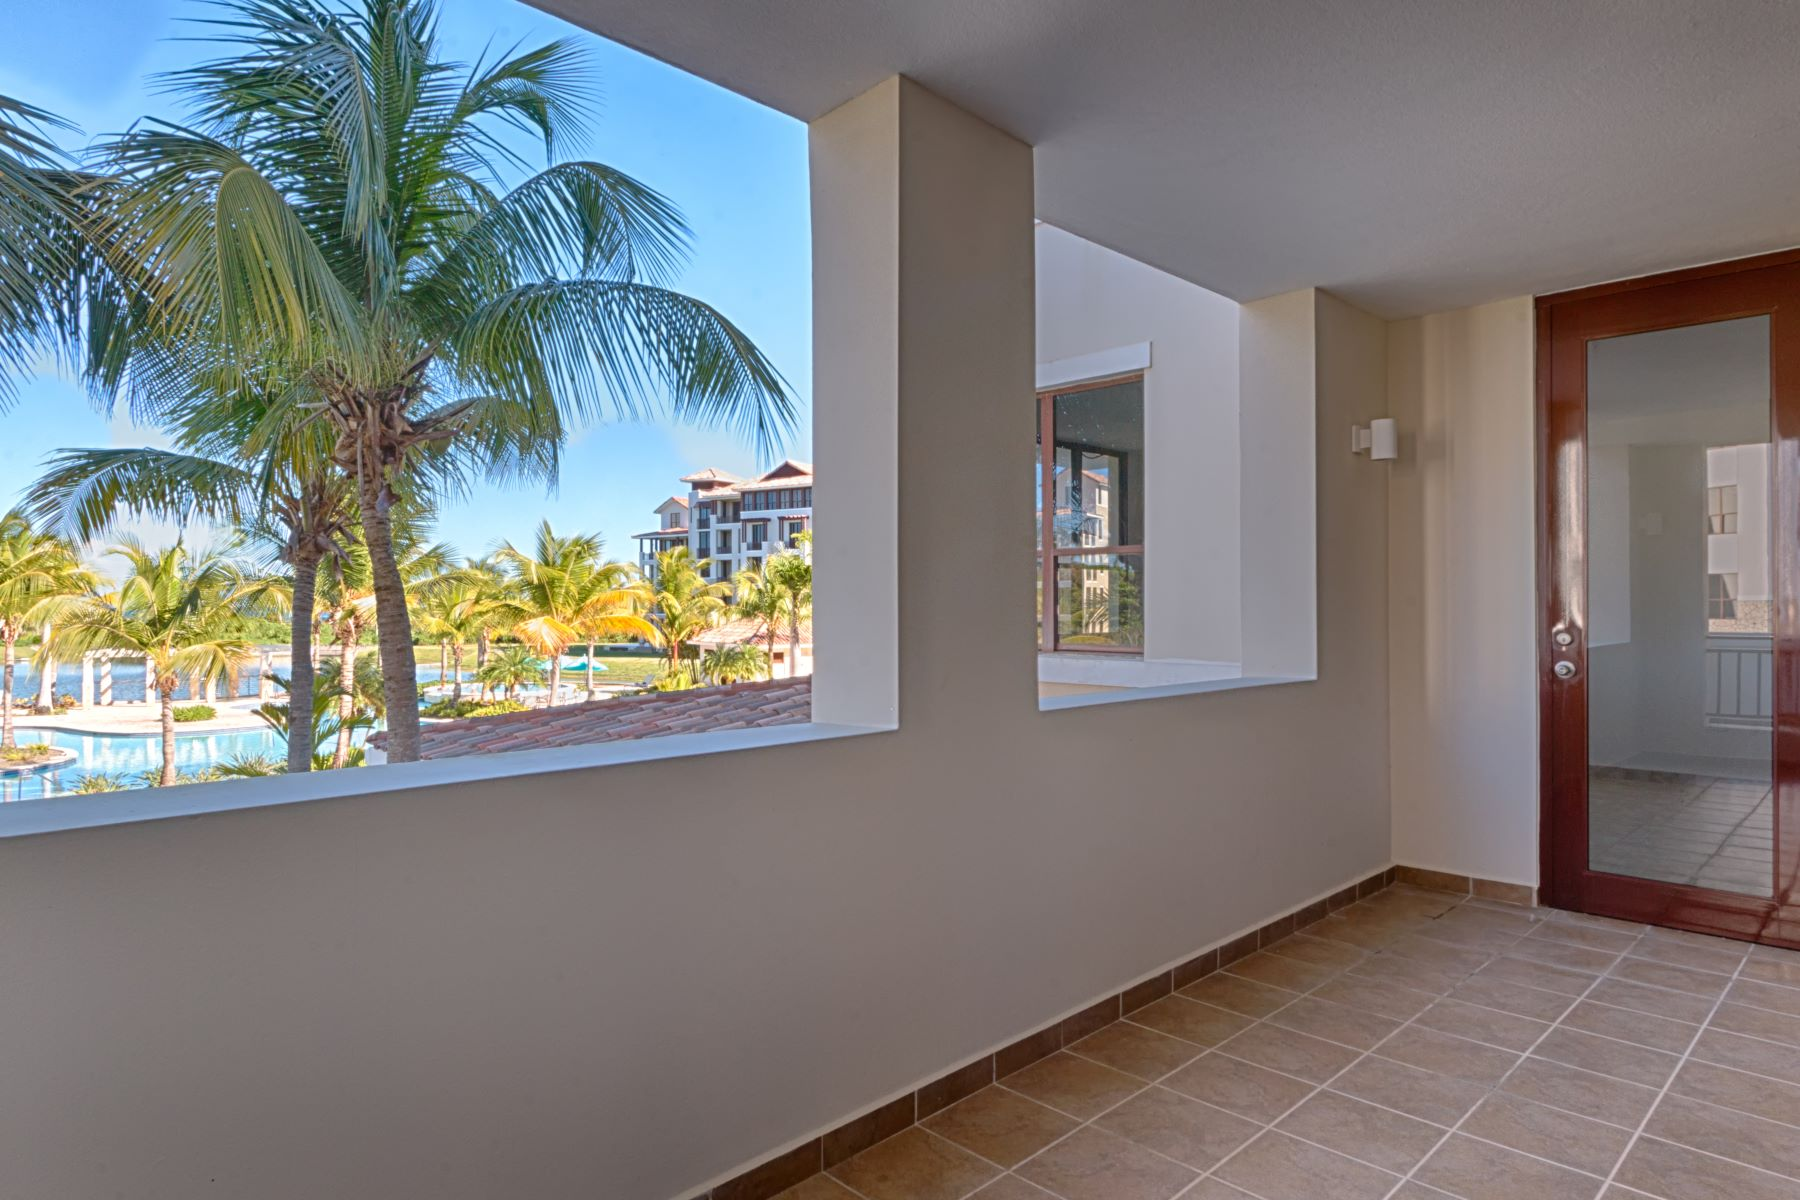 Additional photo for property listing at Residence 223 at 238 Candelero Drive 238 Candelero Drive, Apt 223 Solarea Beach Resort and Yacht Club Palmas Del Mar, Puerto Rico 00791 Porto Rico